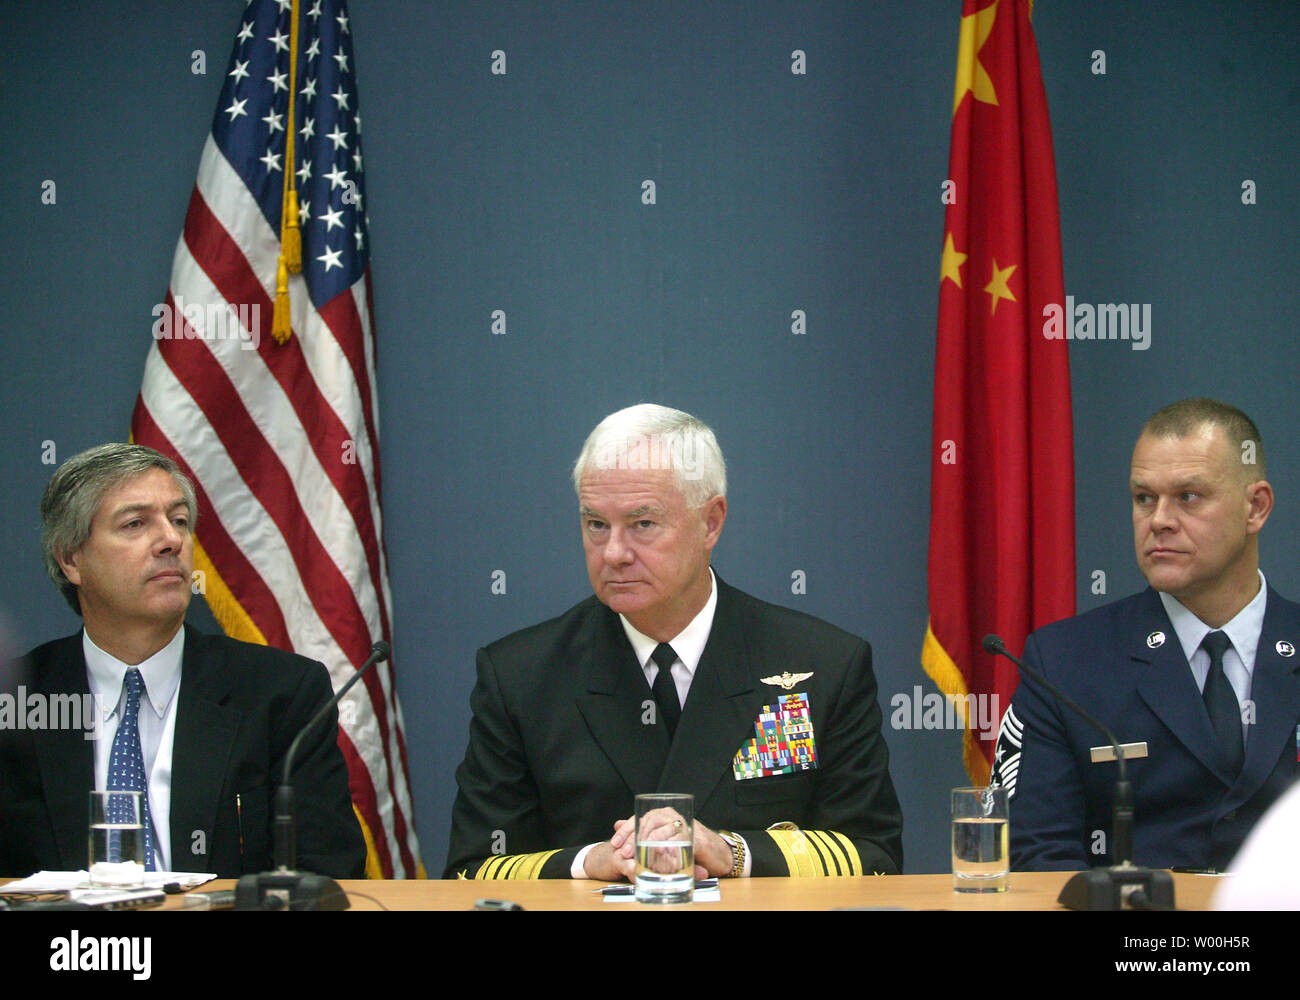 Chief Master Sergeant Of The Air Force Stock Photos & Chief Master